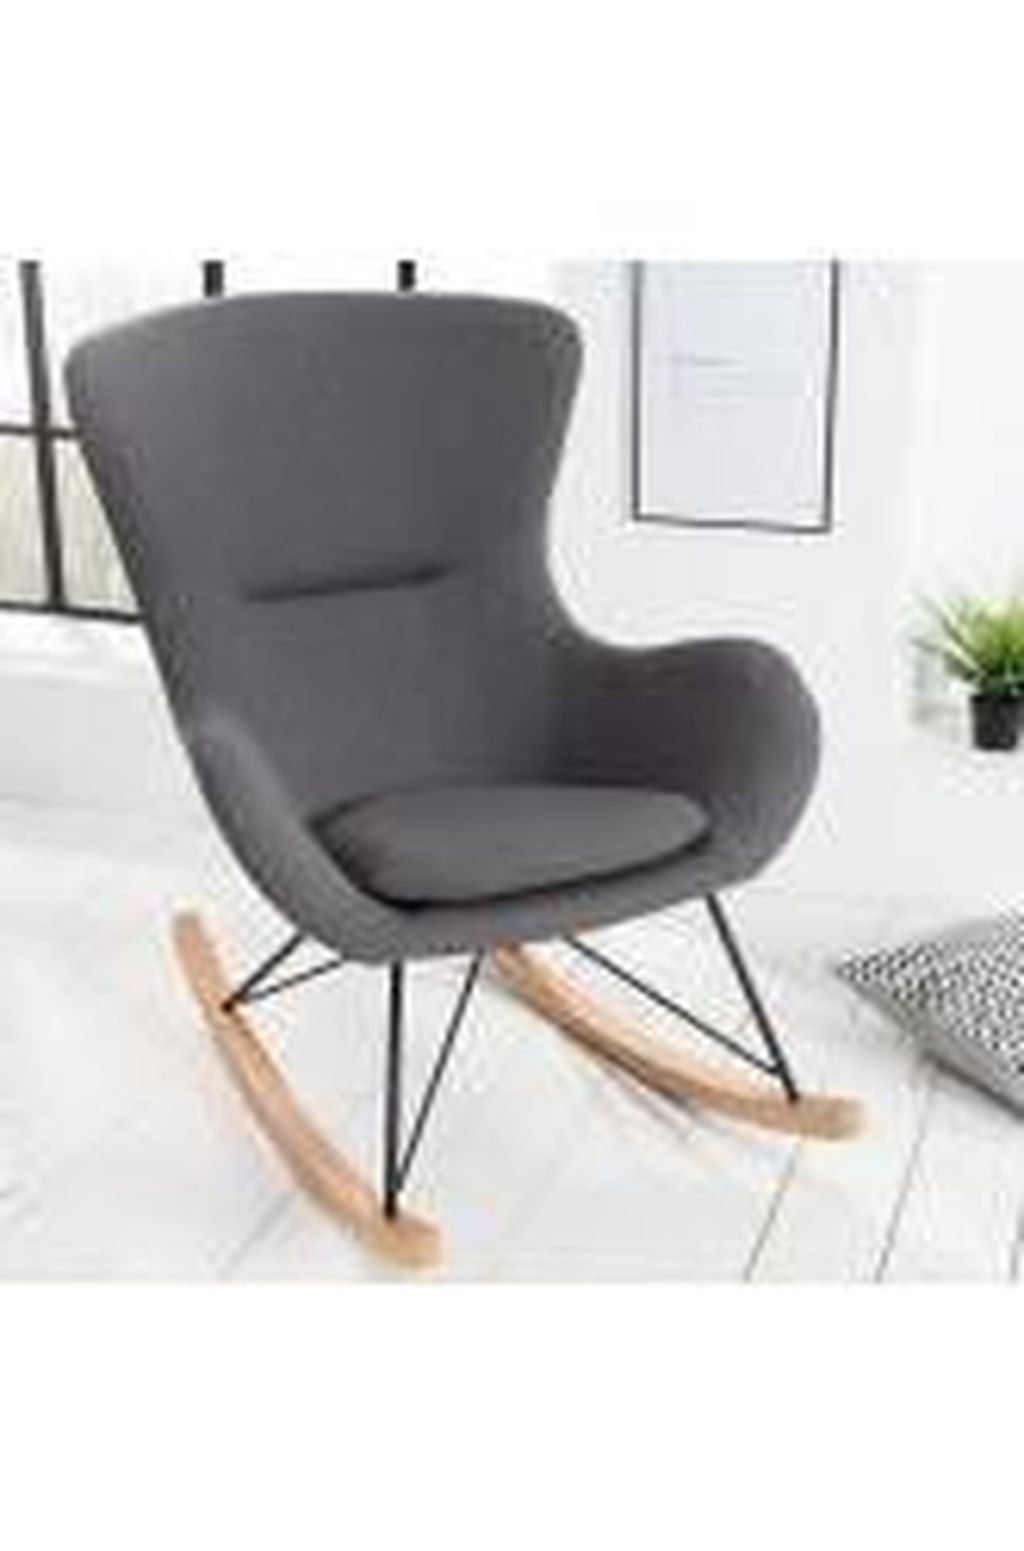 Superb Rocking Chairs Design Ideas For Your Relaxing 03